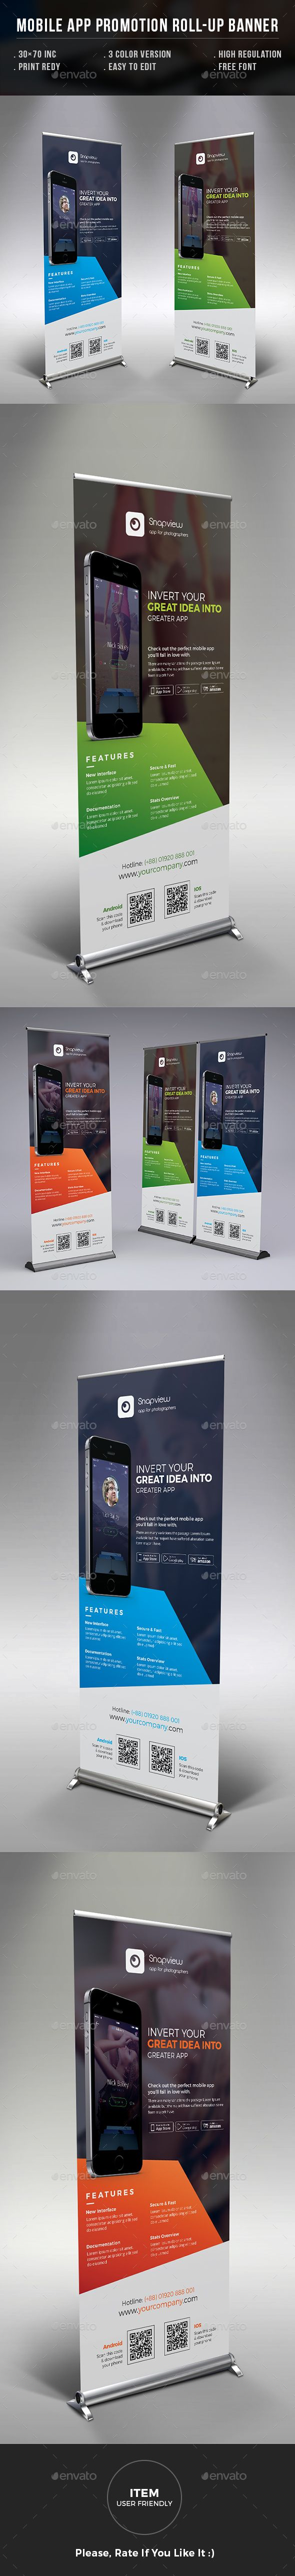 Mobile App Promotion Roll-up Banner - Signage Print Templates Download https://graphicriver.net/item/mobile-app-promotion-rollup-banner/17547170?ref=themedevisers